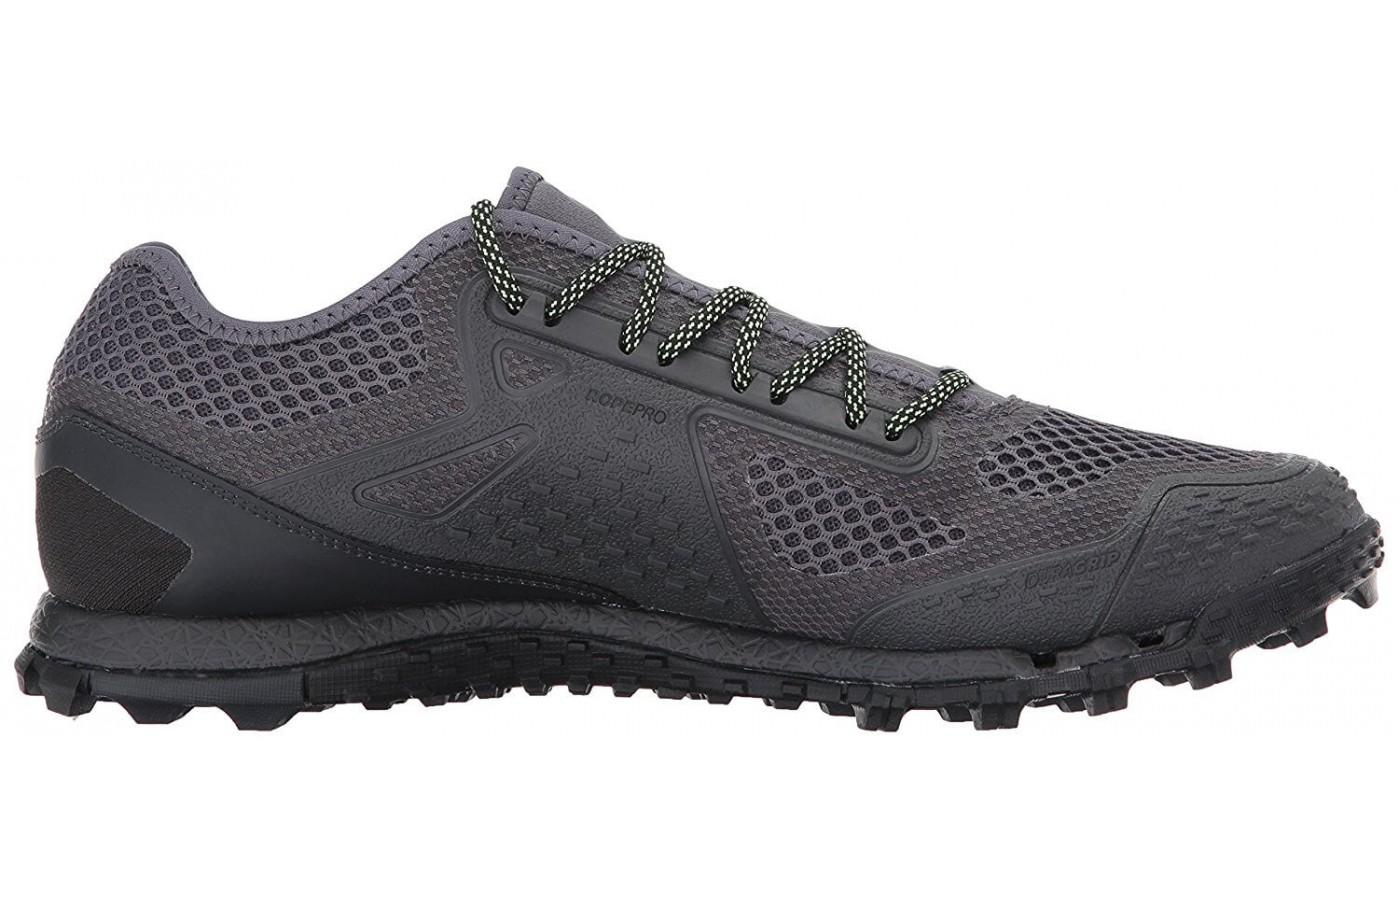 The upper is both breathable and durable.